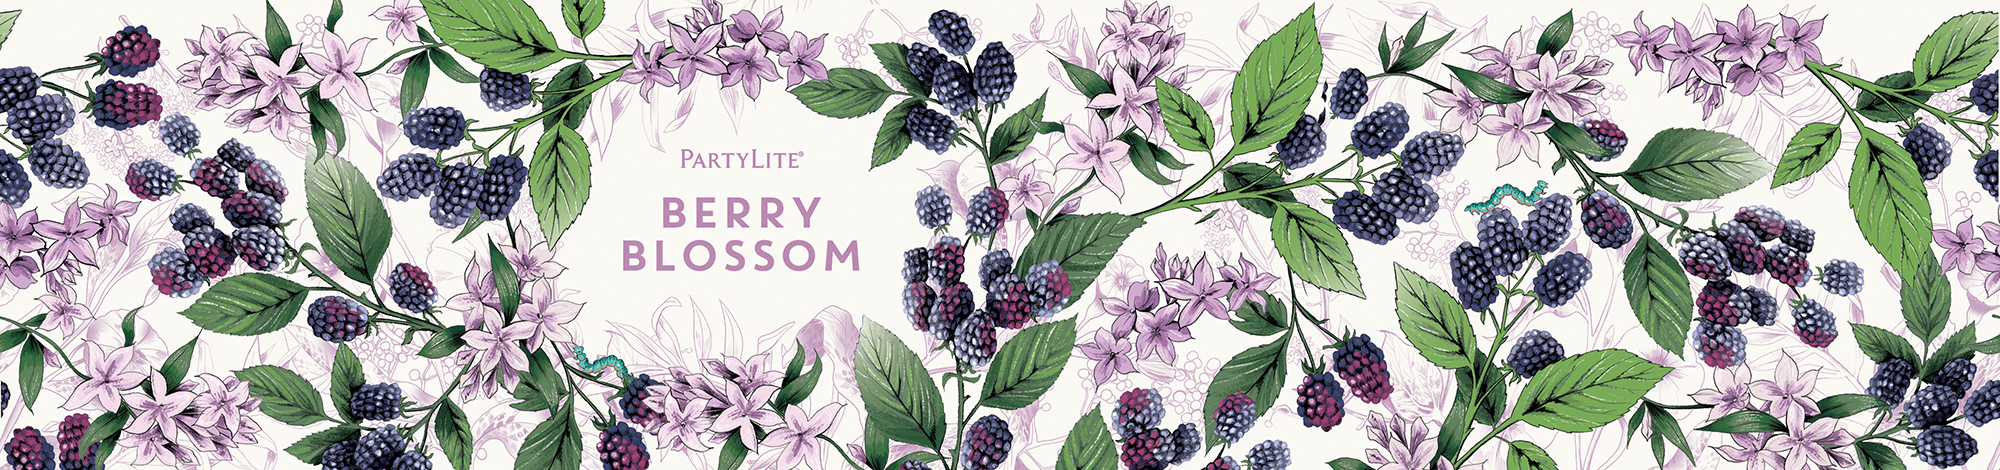 fig.7. Berry Blossom candle wrap pattern illustration